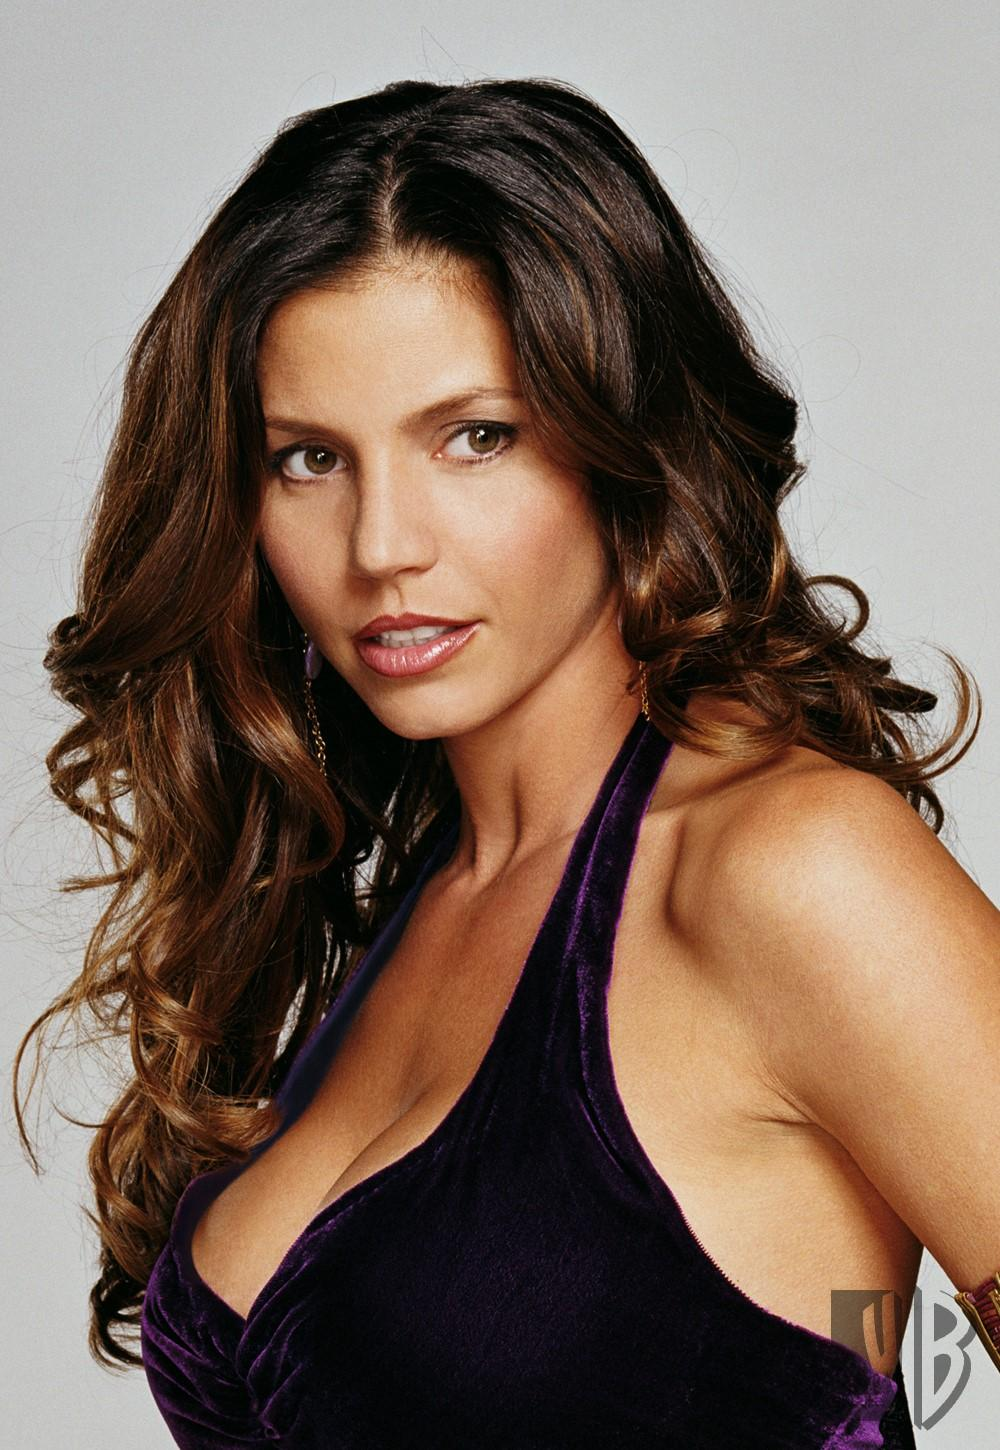 Images Charisma Carpenter naked (91 foto and video), Tits, Hot, Instagram, swimsuit 2019